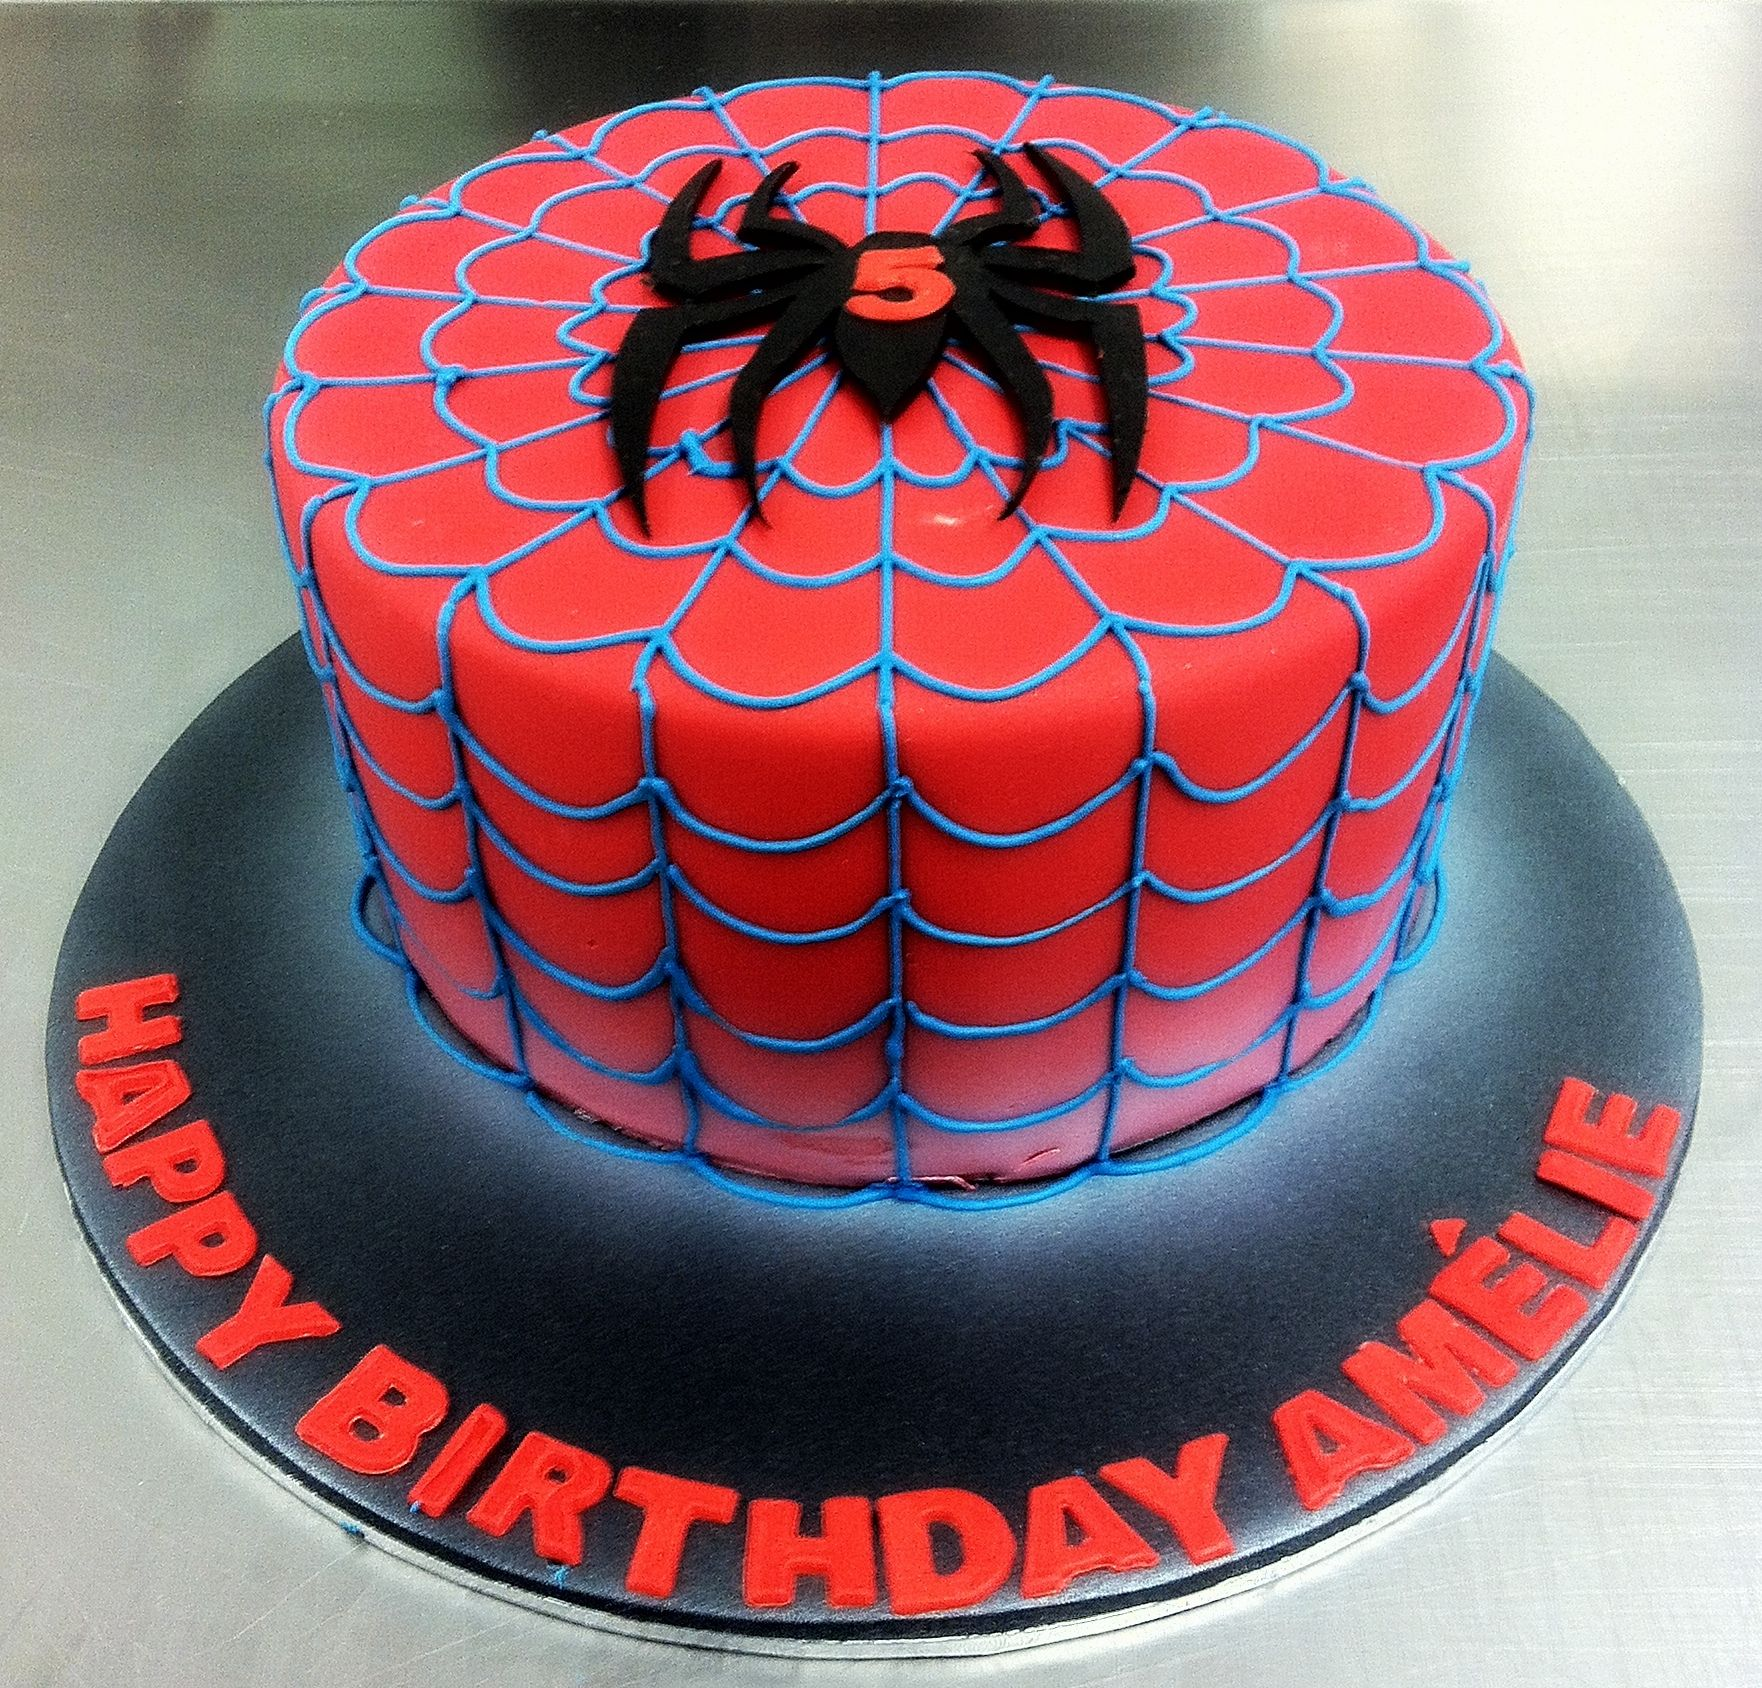 specialty and birthday cakes up to 250 chocolate earth cakes on specialty birthday cakes auckland